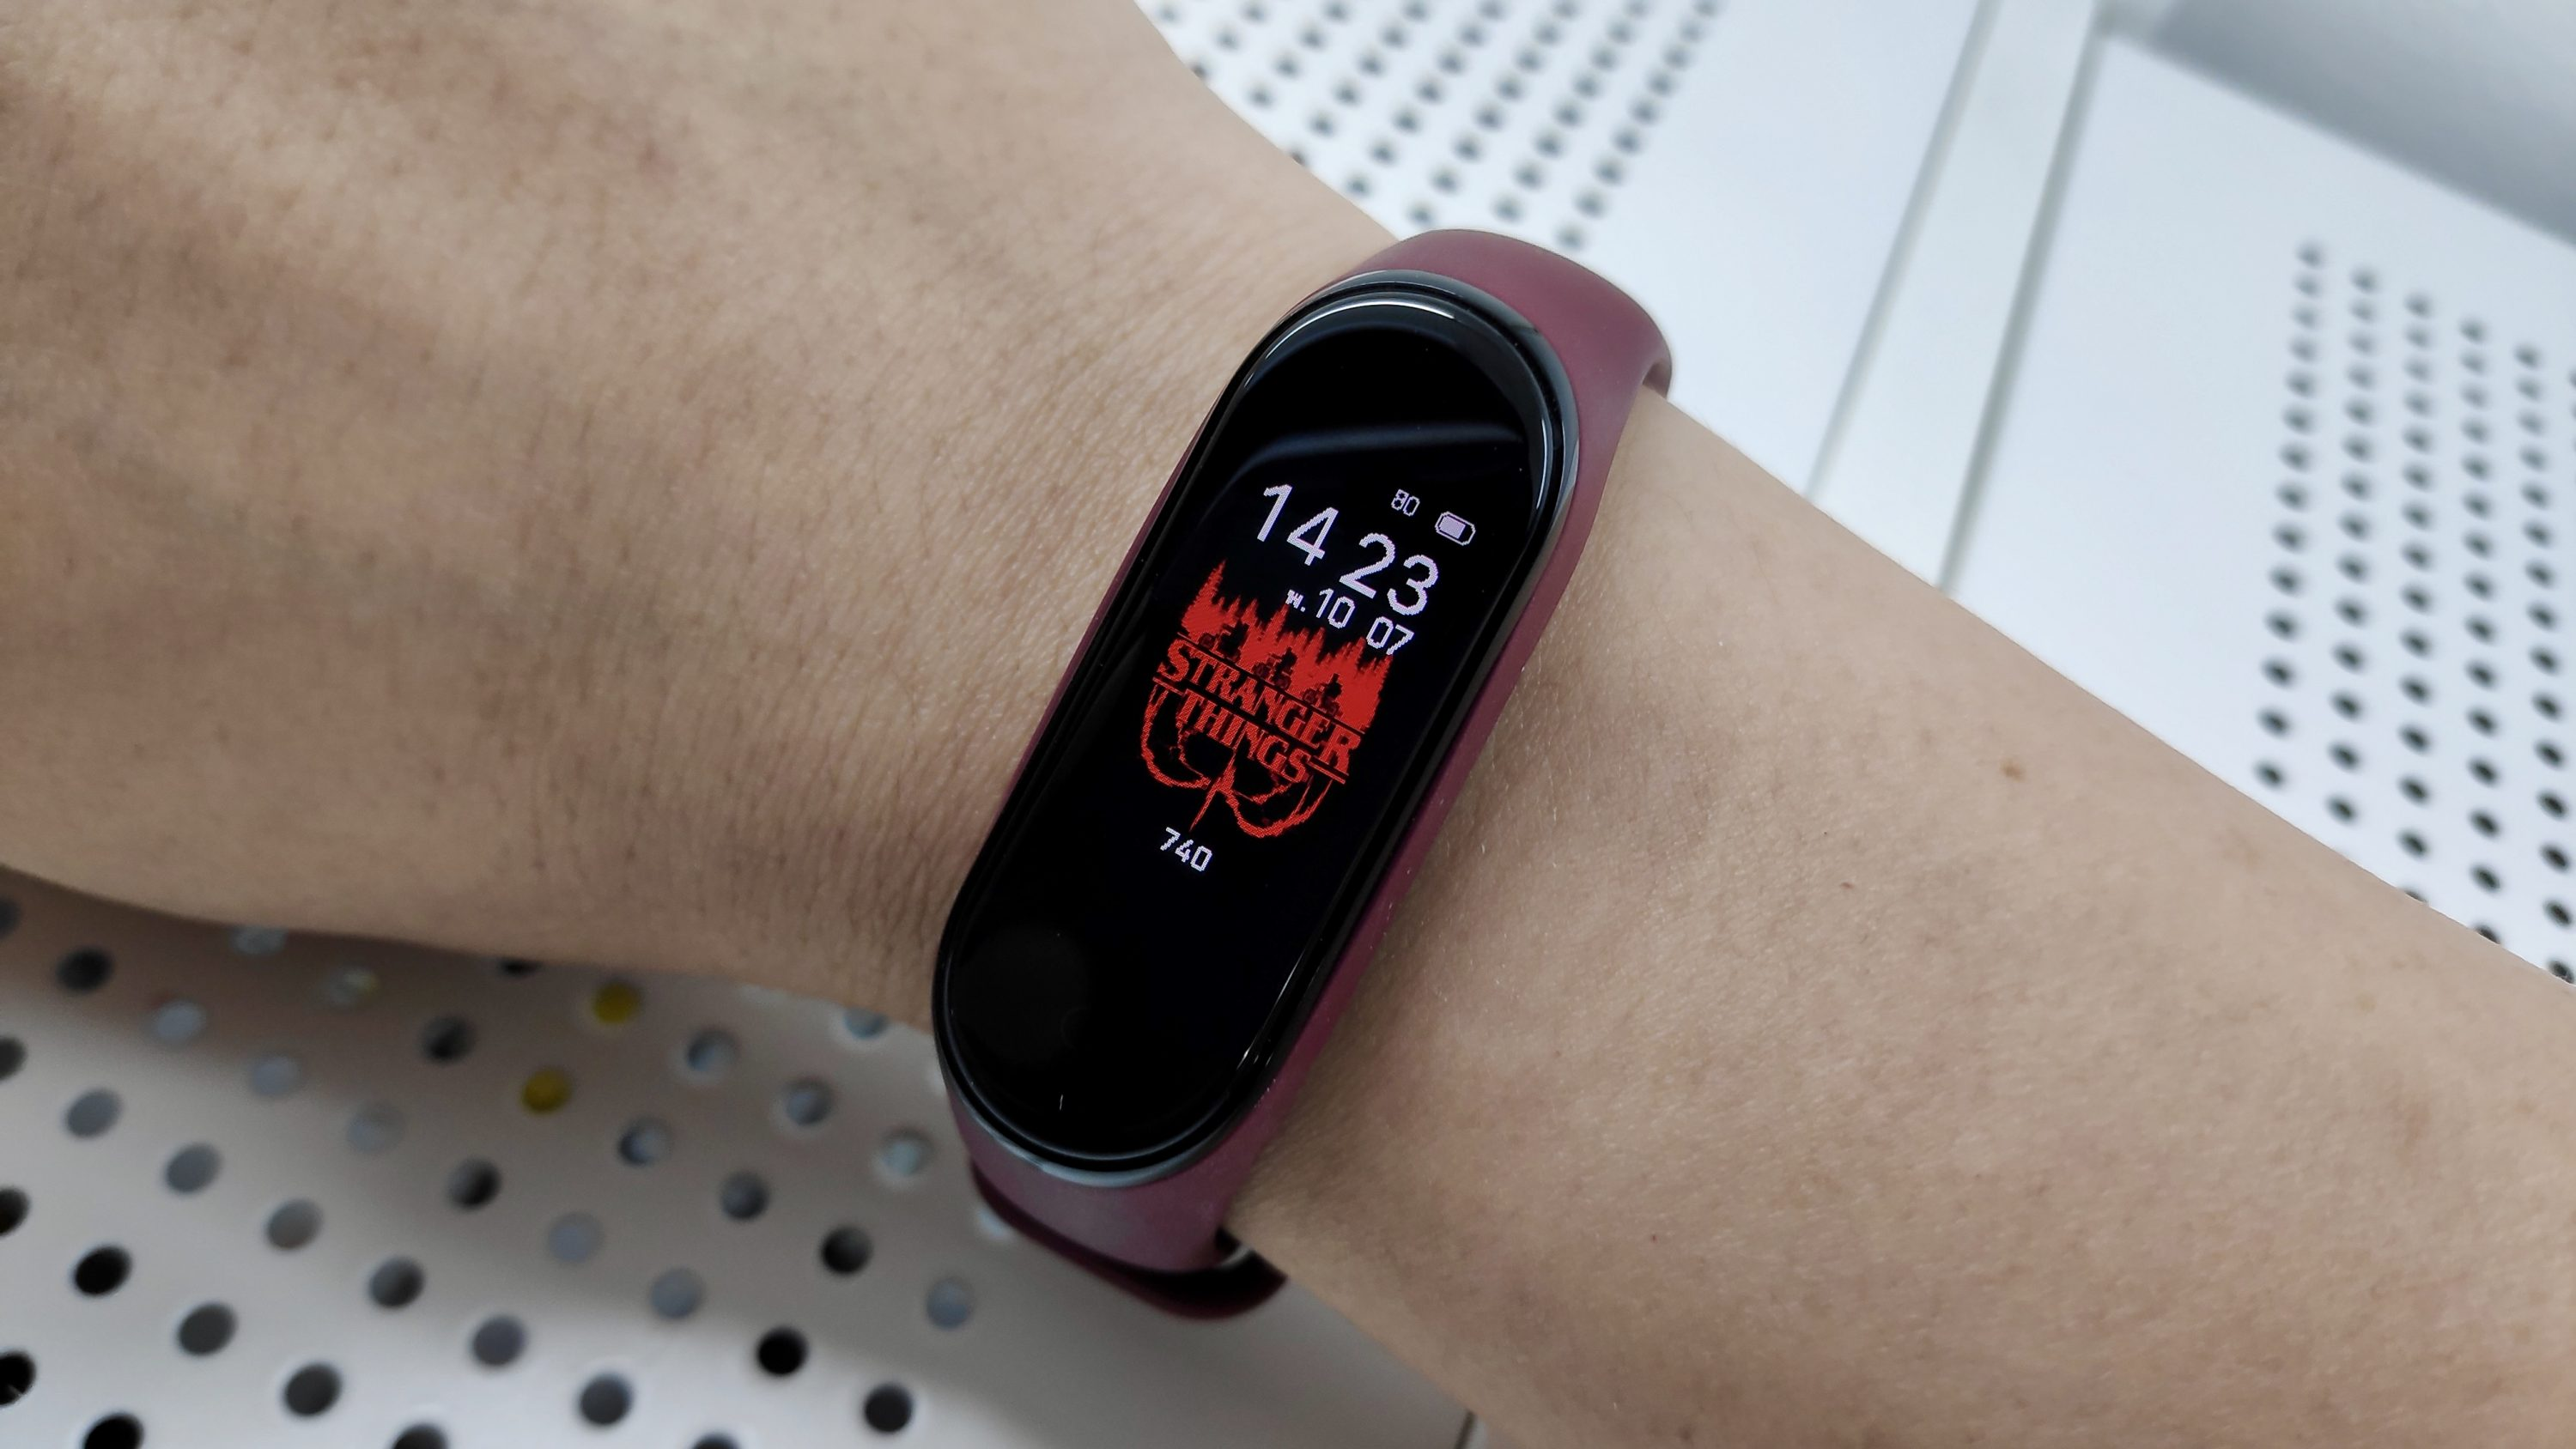 How to install a Stranger Things custom watch face on your